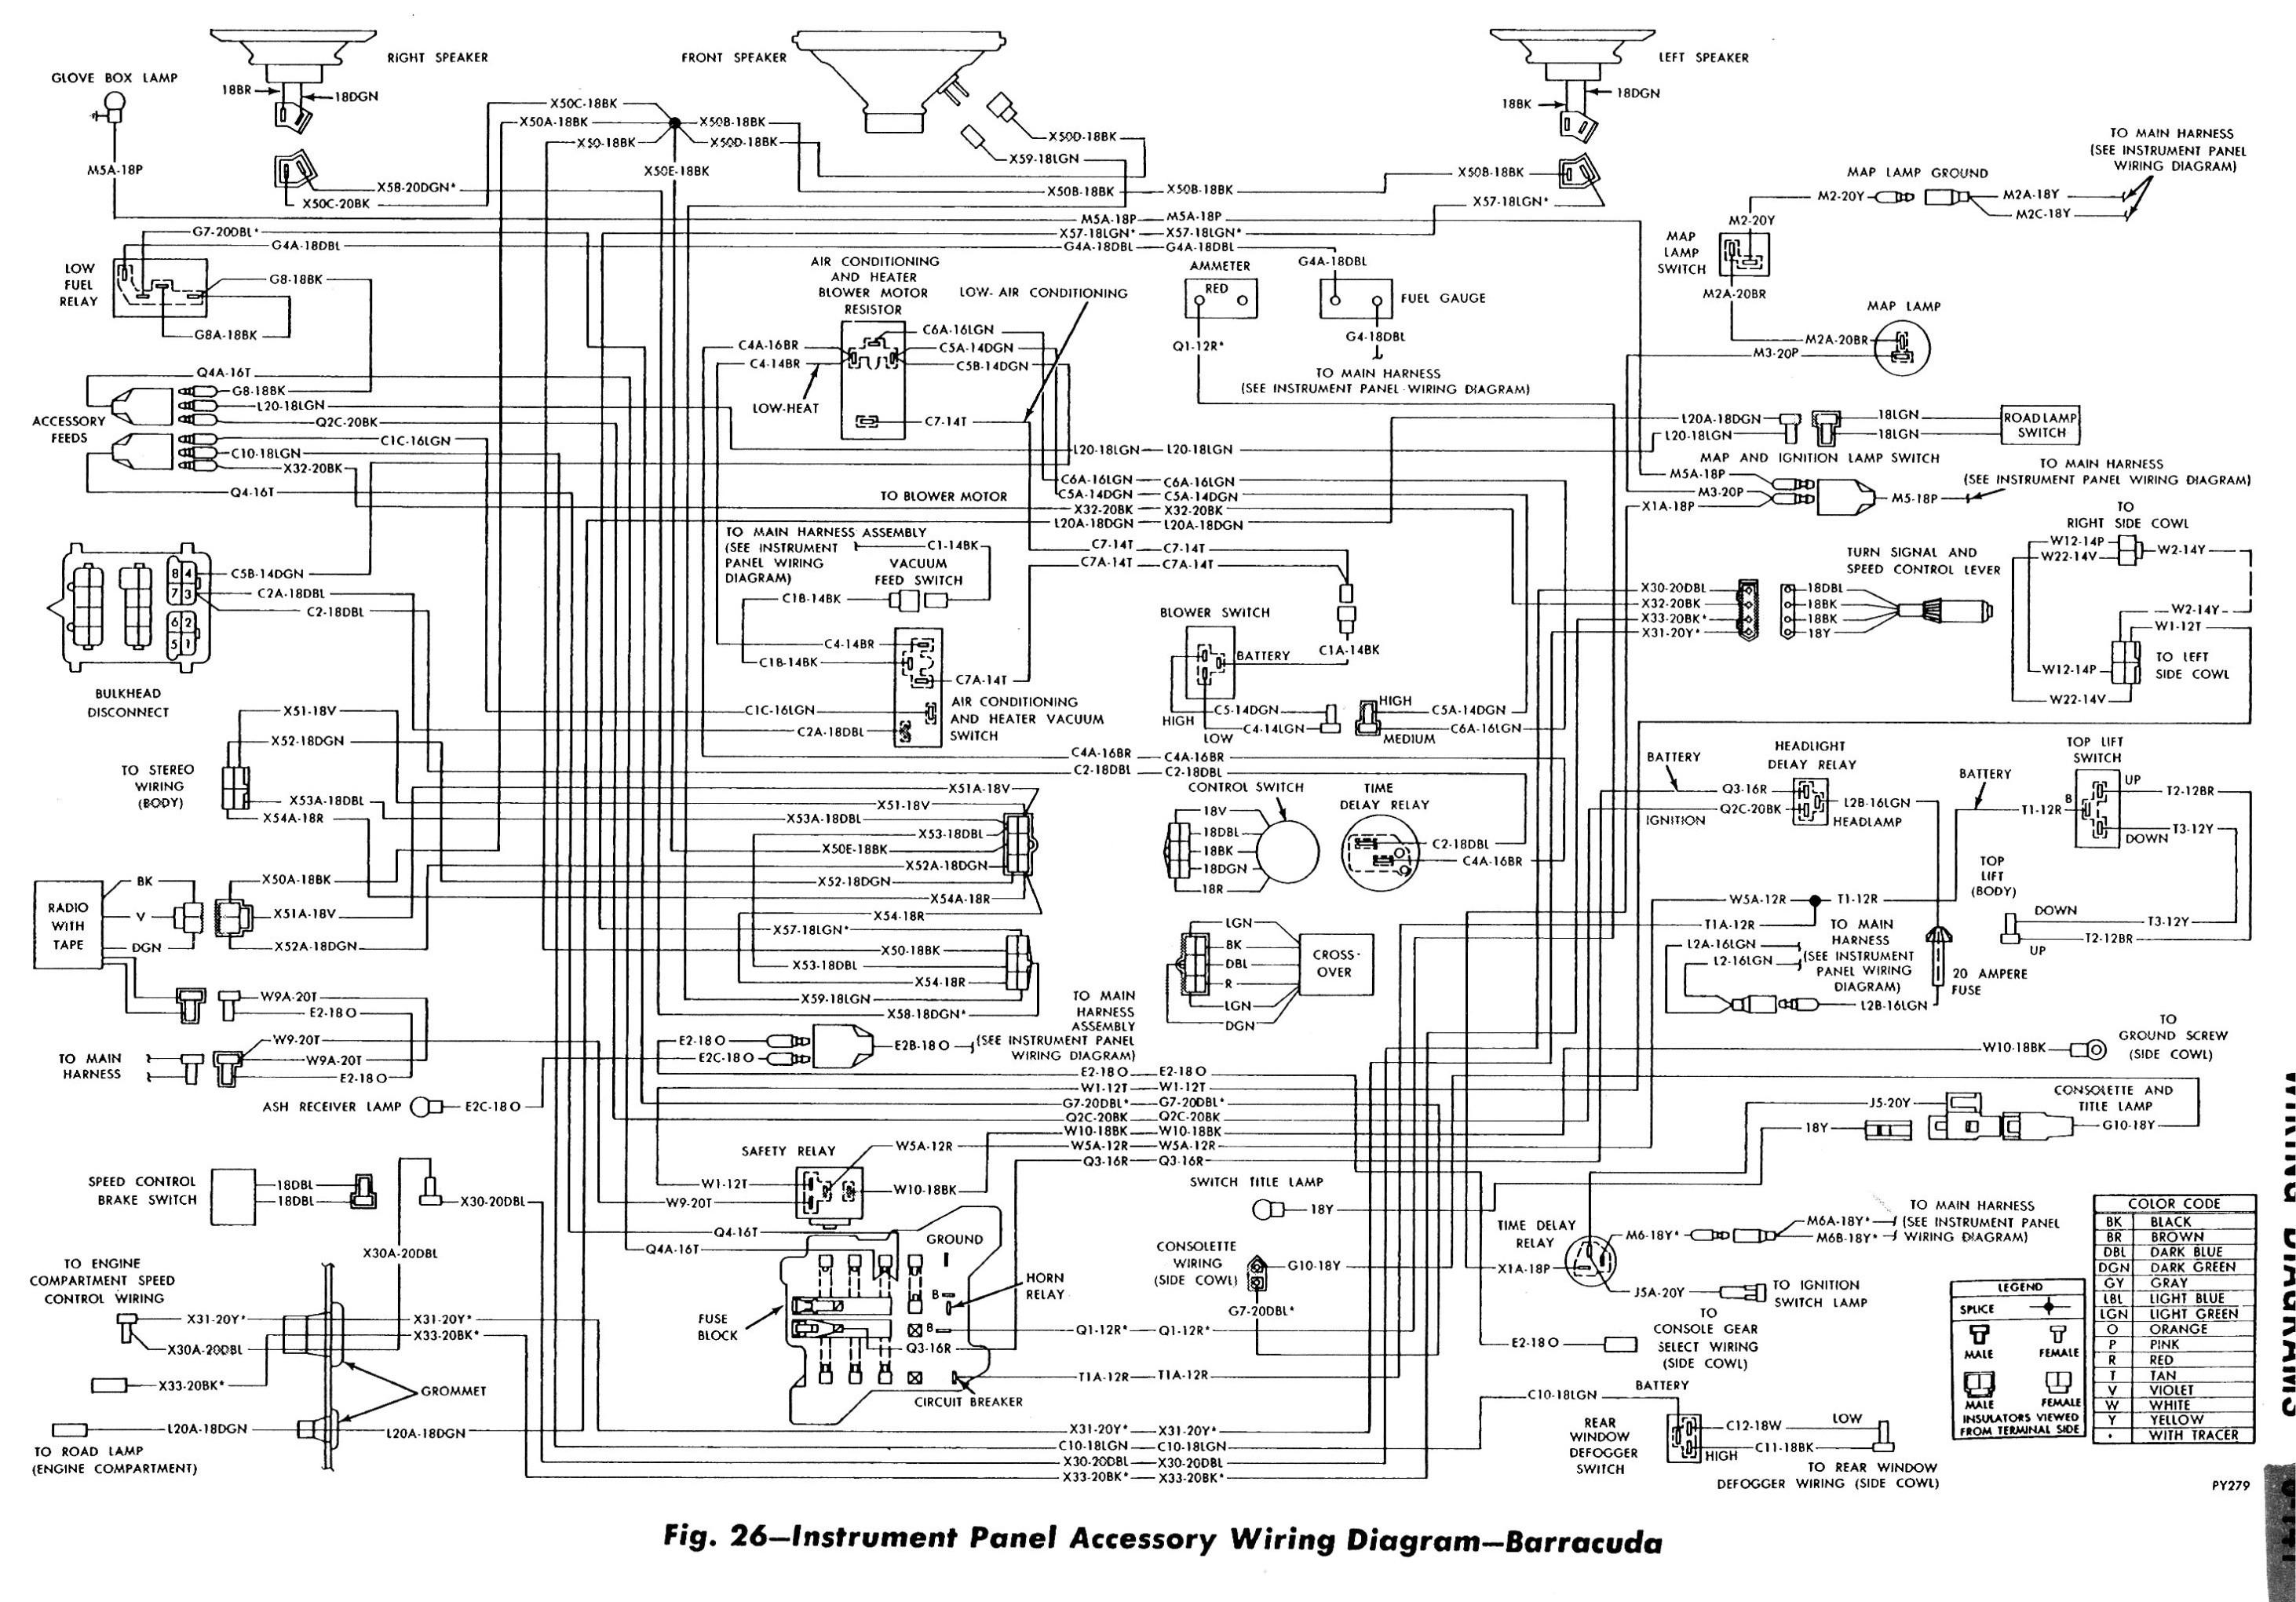 wiring diagram 1972 corvette  u2013 the wiring diagram